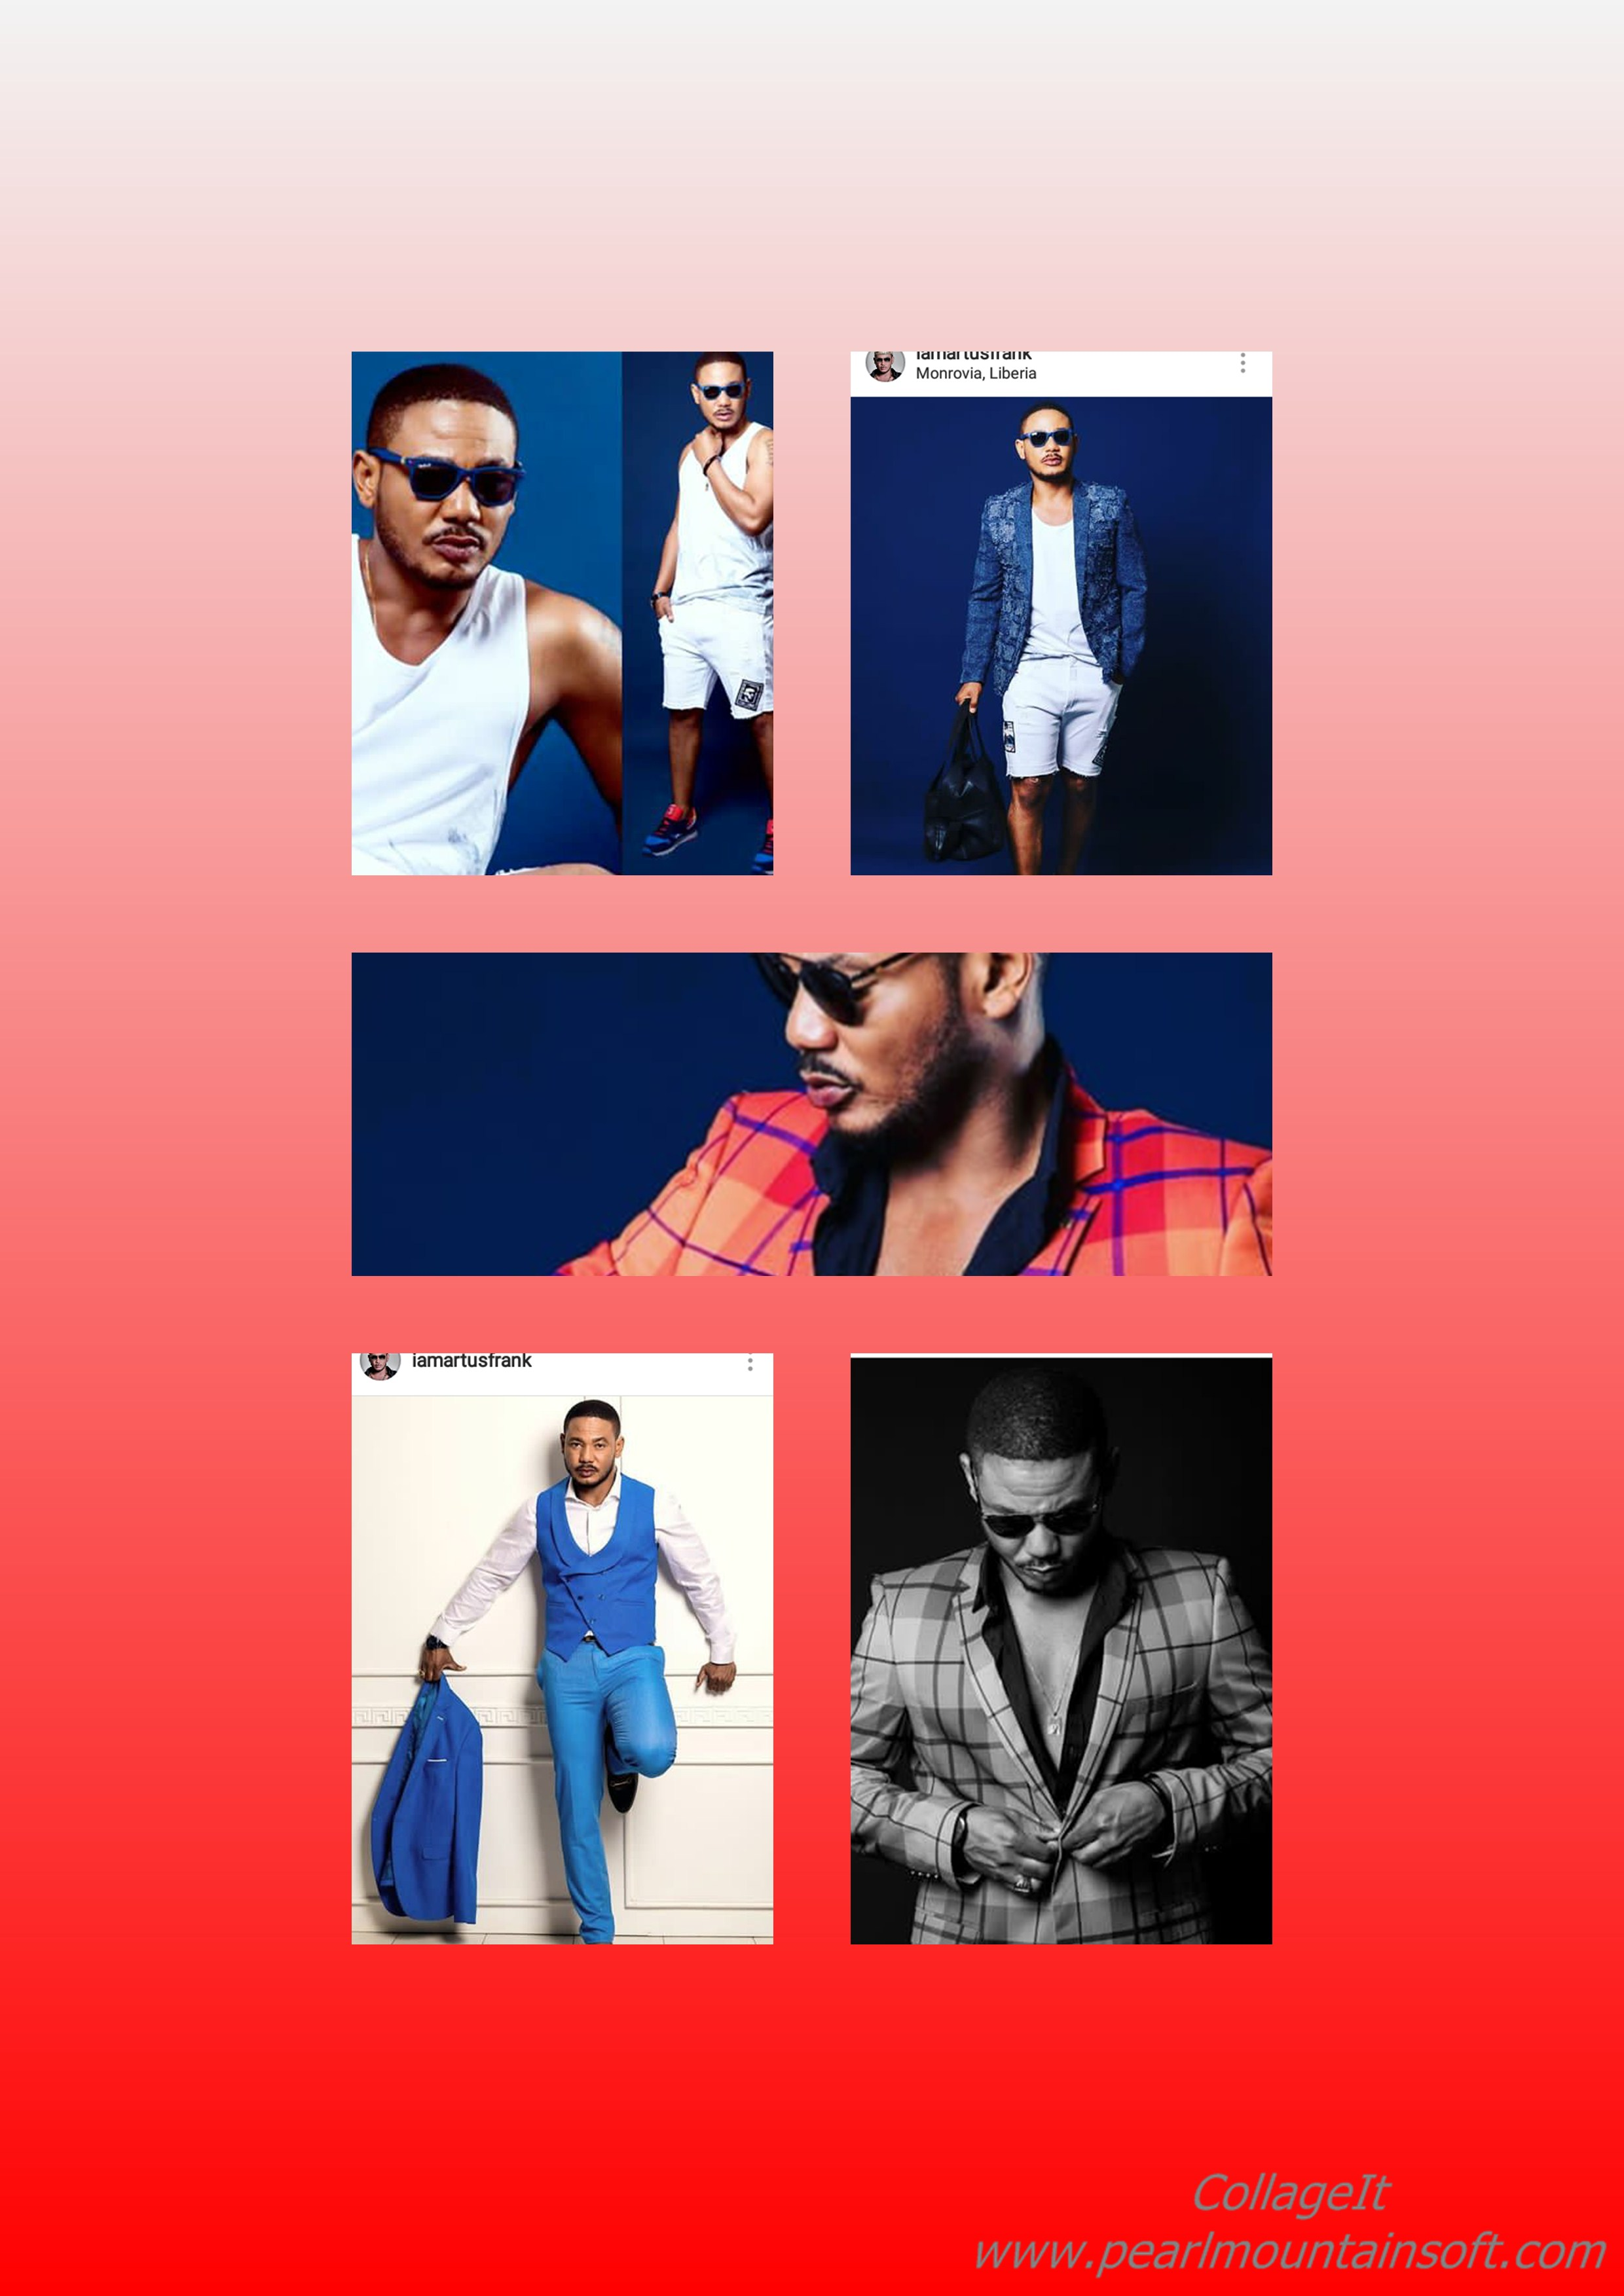 FRANK ARTUS'S PICTURE CRAZE FOR THE WEEK: Blazing, Sexy, Weird, Modest or Something else?